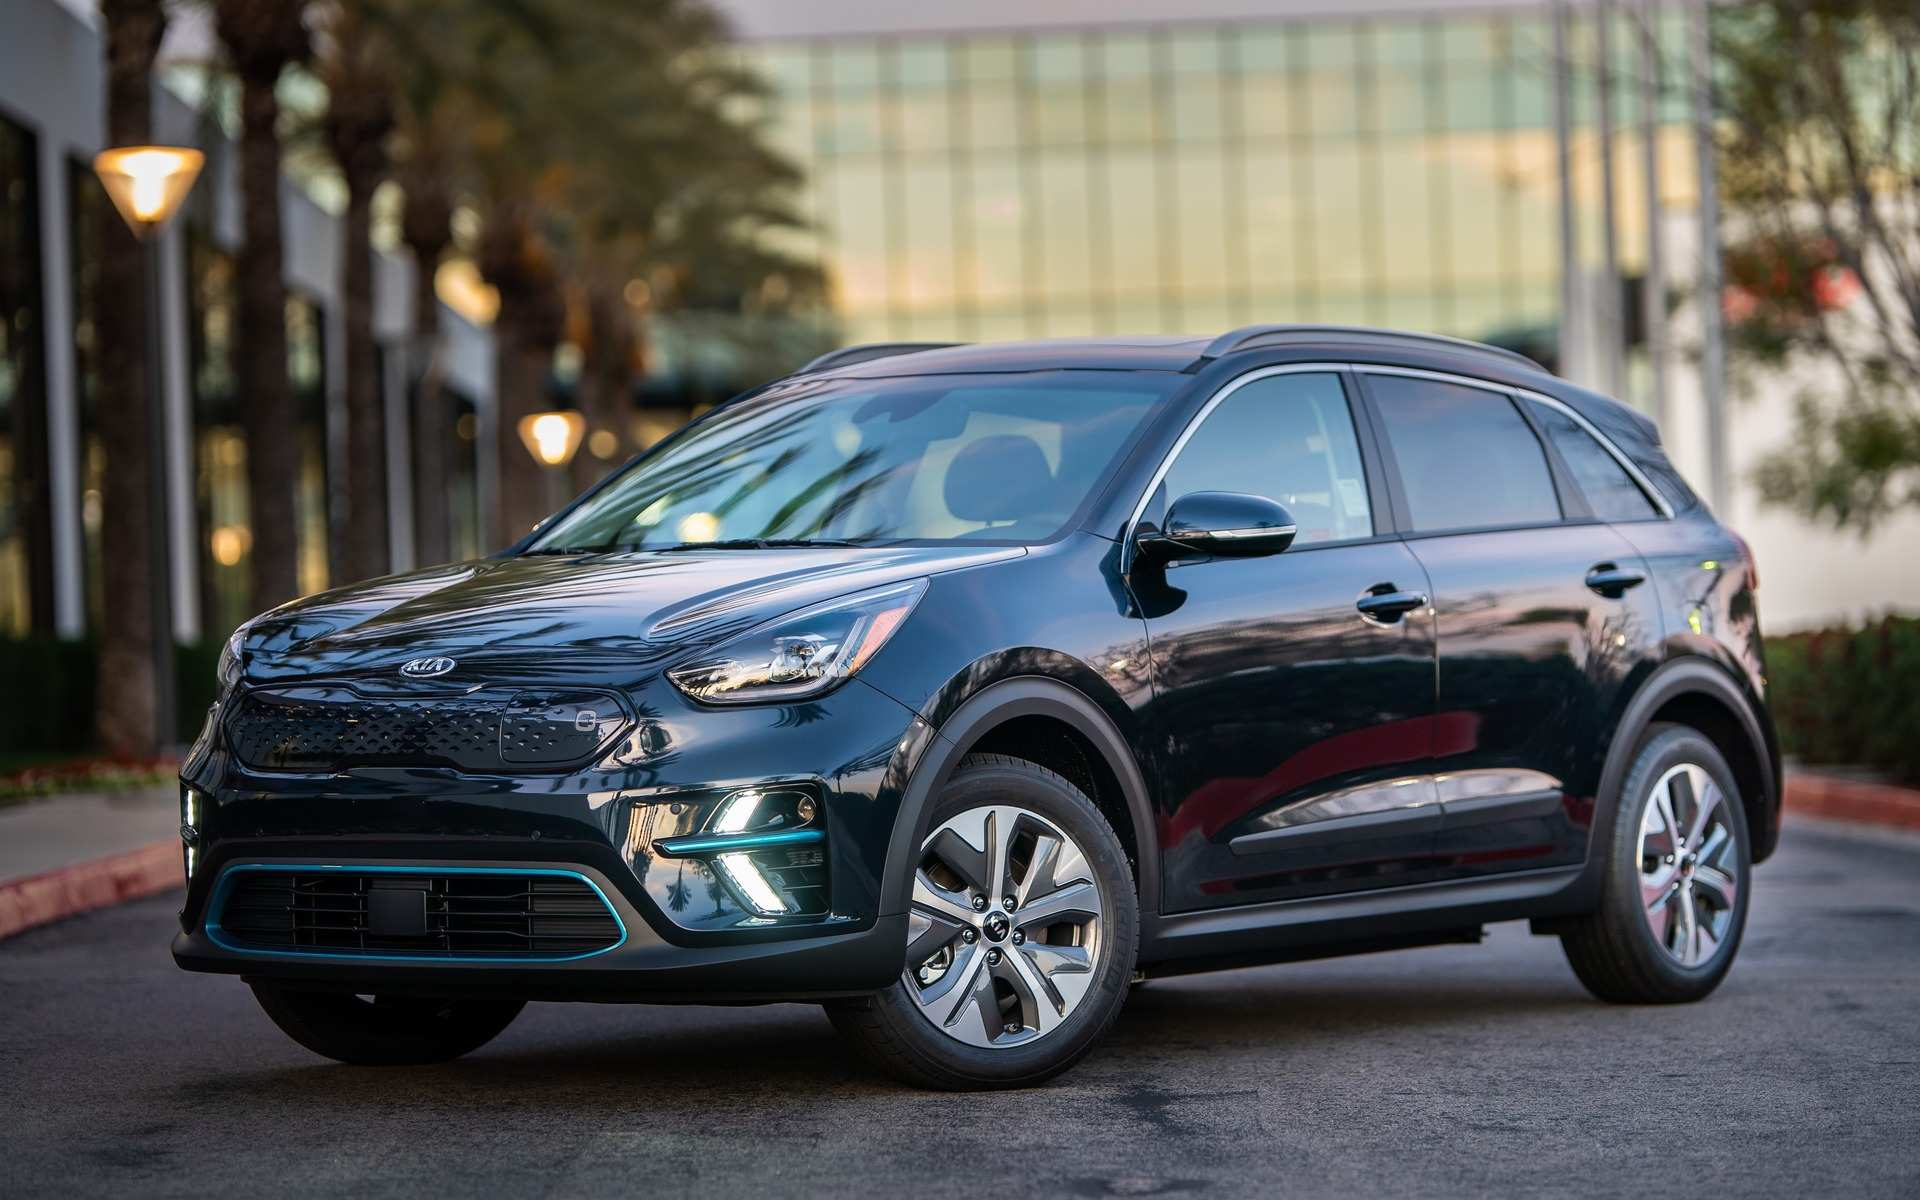 77 Great 2019 Kia Niro Ev Release Date Performance for 2019 Kia Niro Ev Release Date